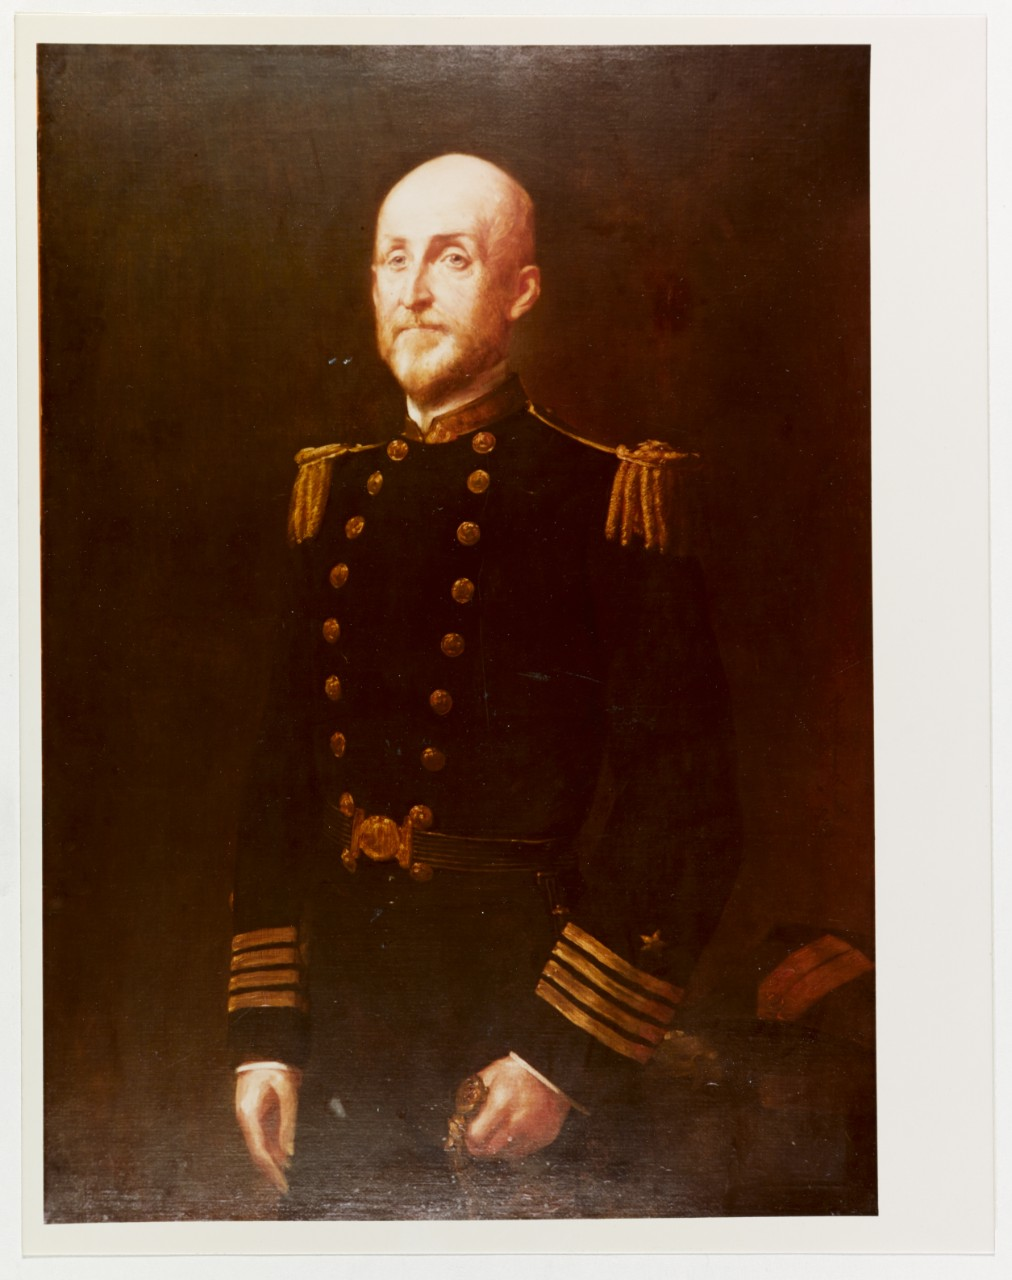 Portrait in oils of author, theorist, and U.S. naval officer Capt. Alfred Thayer Mahan, by an unidentified artist from the Navy Art Collection. (Naval History and Heritage Command Photograph NH 48056-KN)